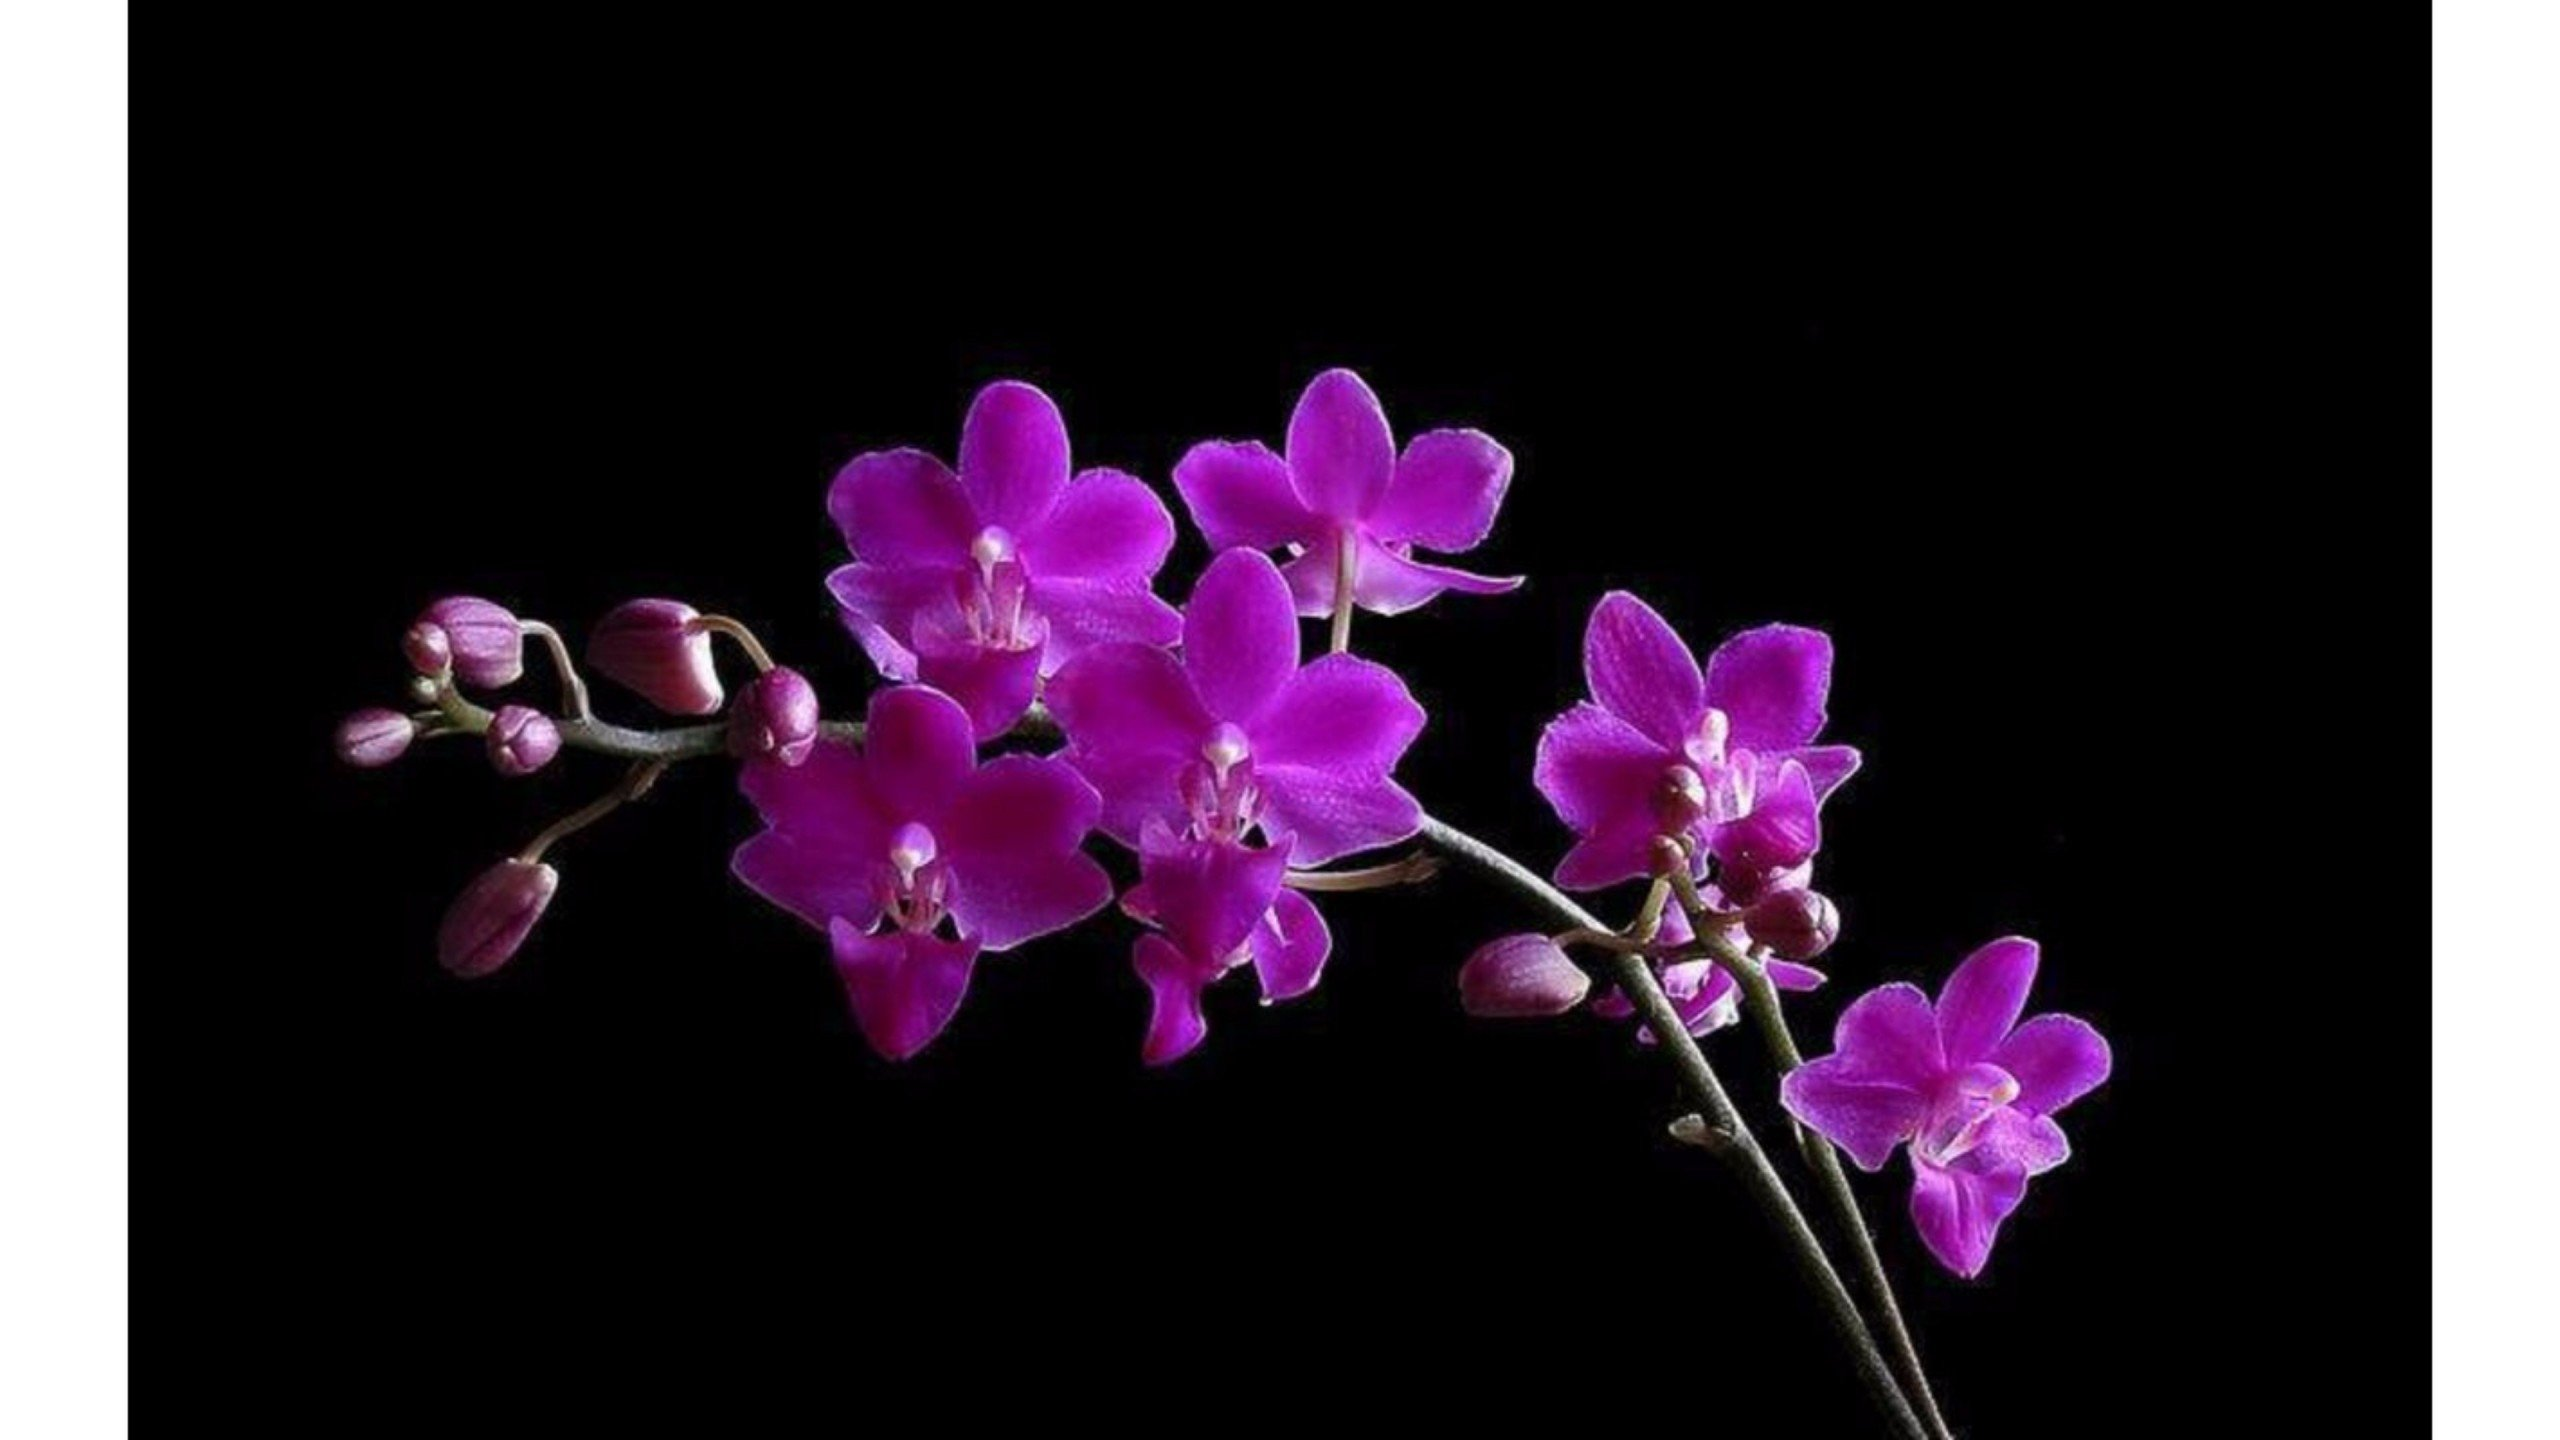 Orchids Wallpapers Pictures to pin 2560x1440